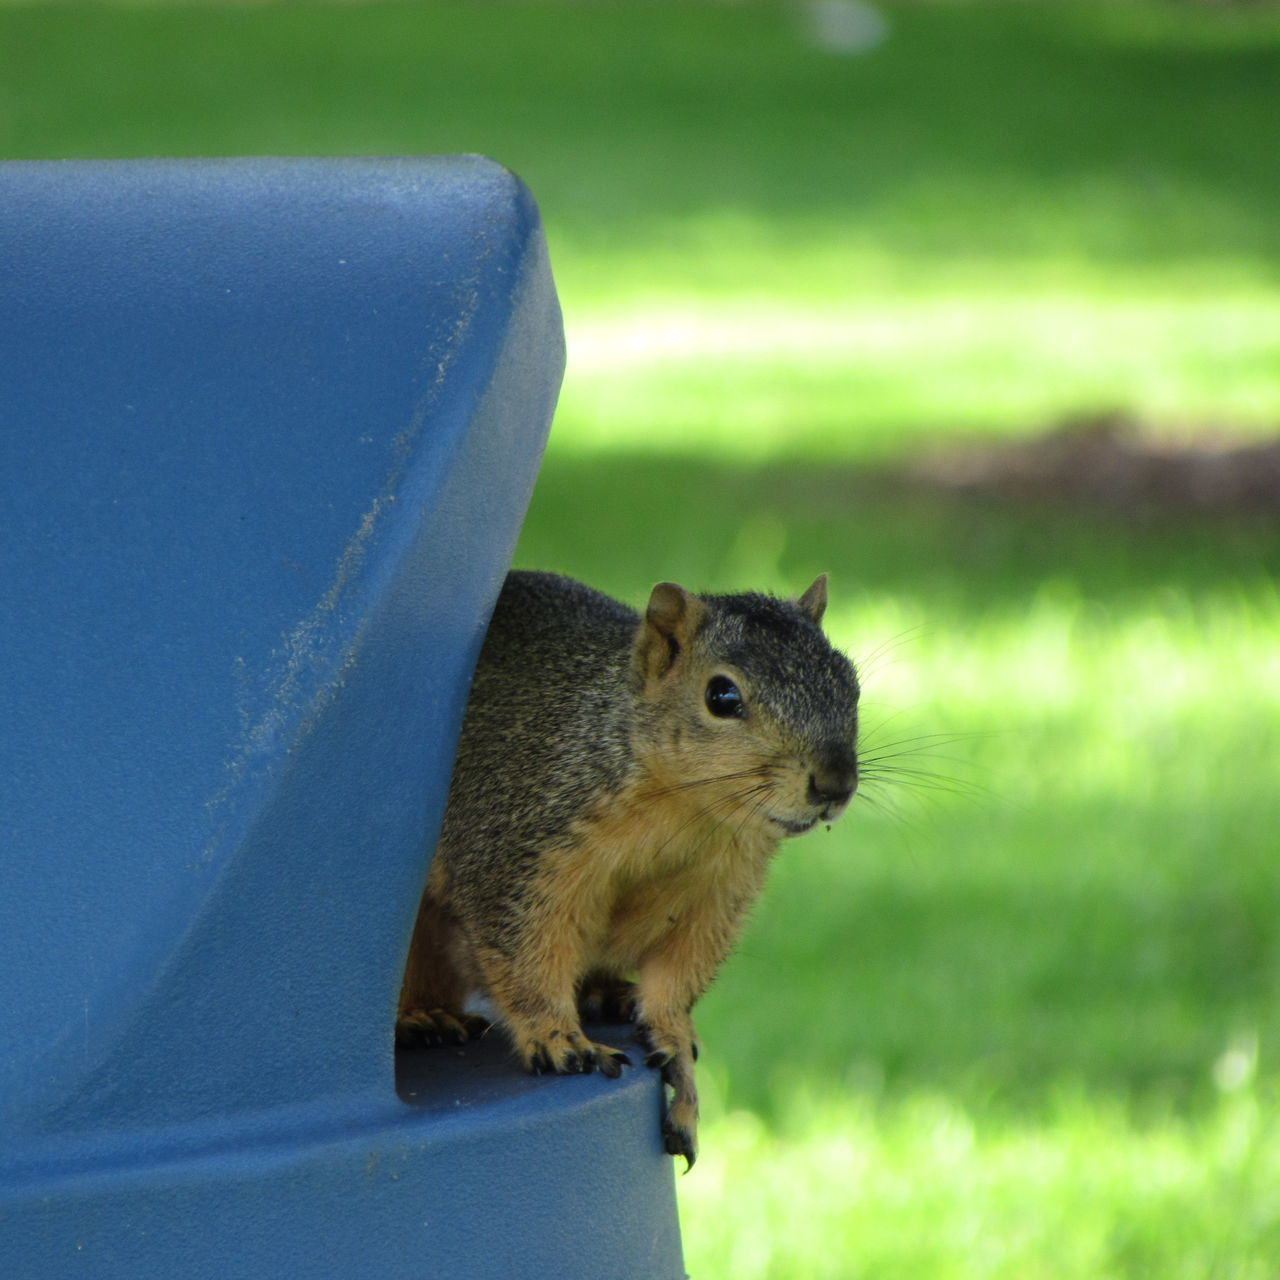 Mr Squirrel One Animal Animal Themes Squirrel Animal Wildlife Day No People Outdoors Close-up Nature No Filter, No Edit, Just Photography Beautiful Nature Nature Trash Can Worried Look and Suspicious of me! Funny Squirrel Laughing Out Loud Watching Him Watch Me! EyeEmNewHere